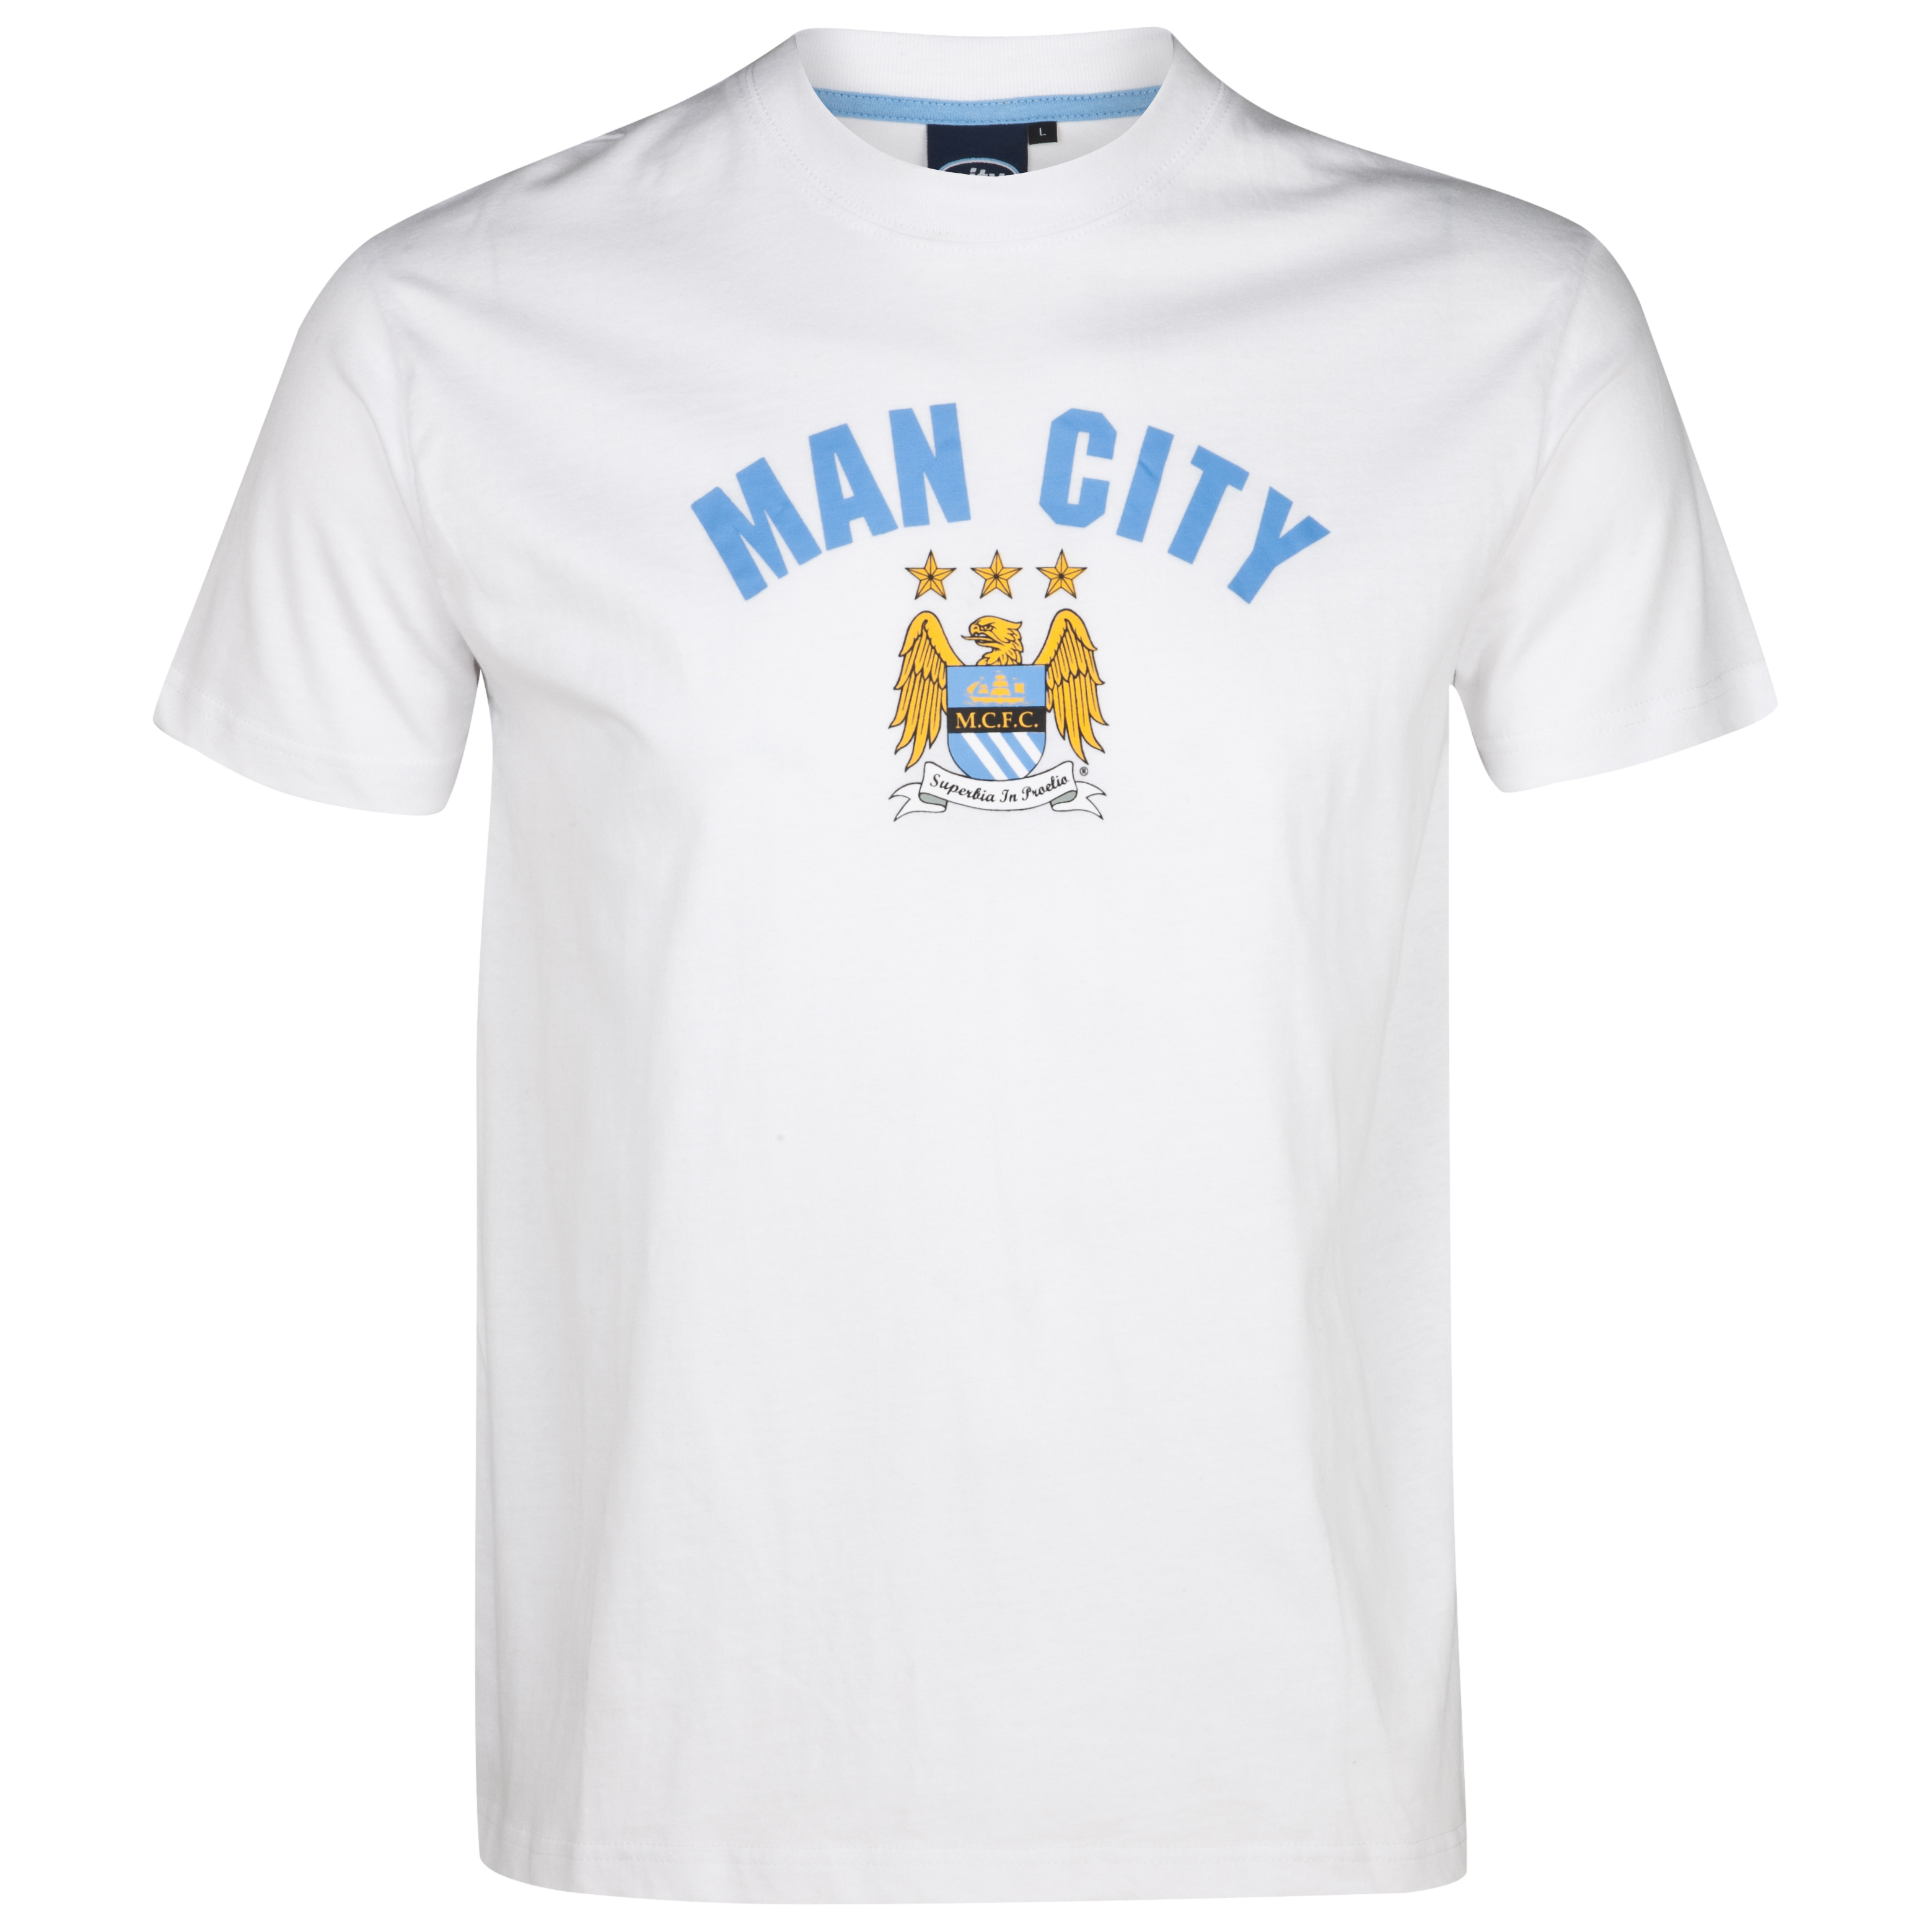 Manchester City Essential Staley T-Shirt - White - Infant Boys